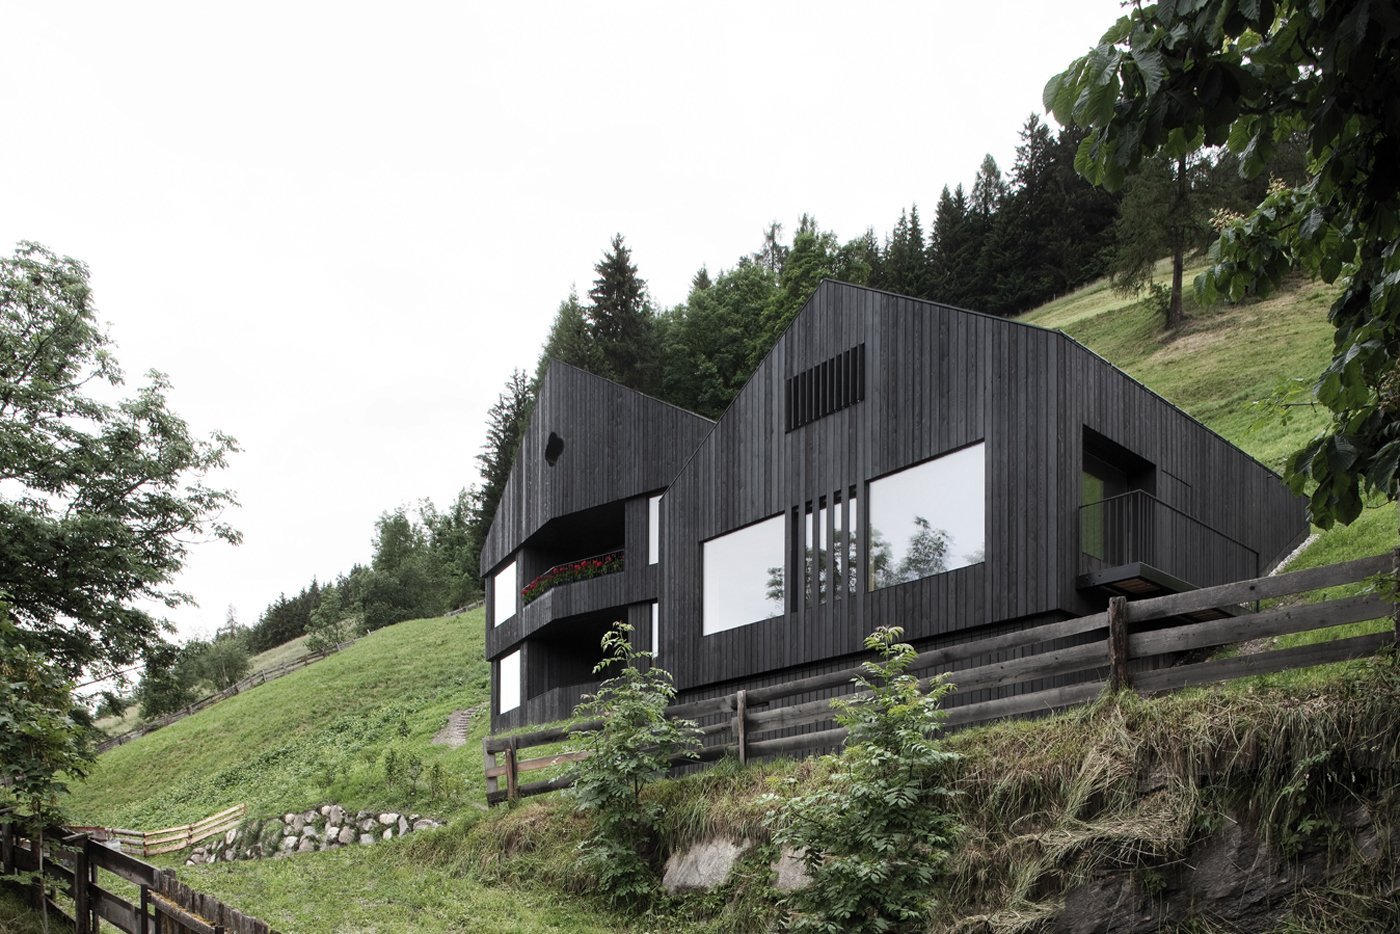 Photo 1 of 13 in Find Sanctuary in This Chalet in the Italian Alps